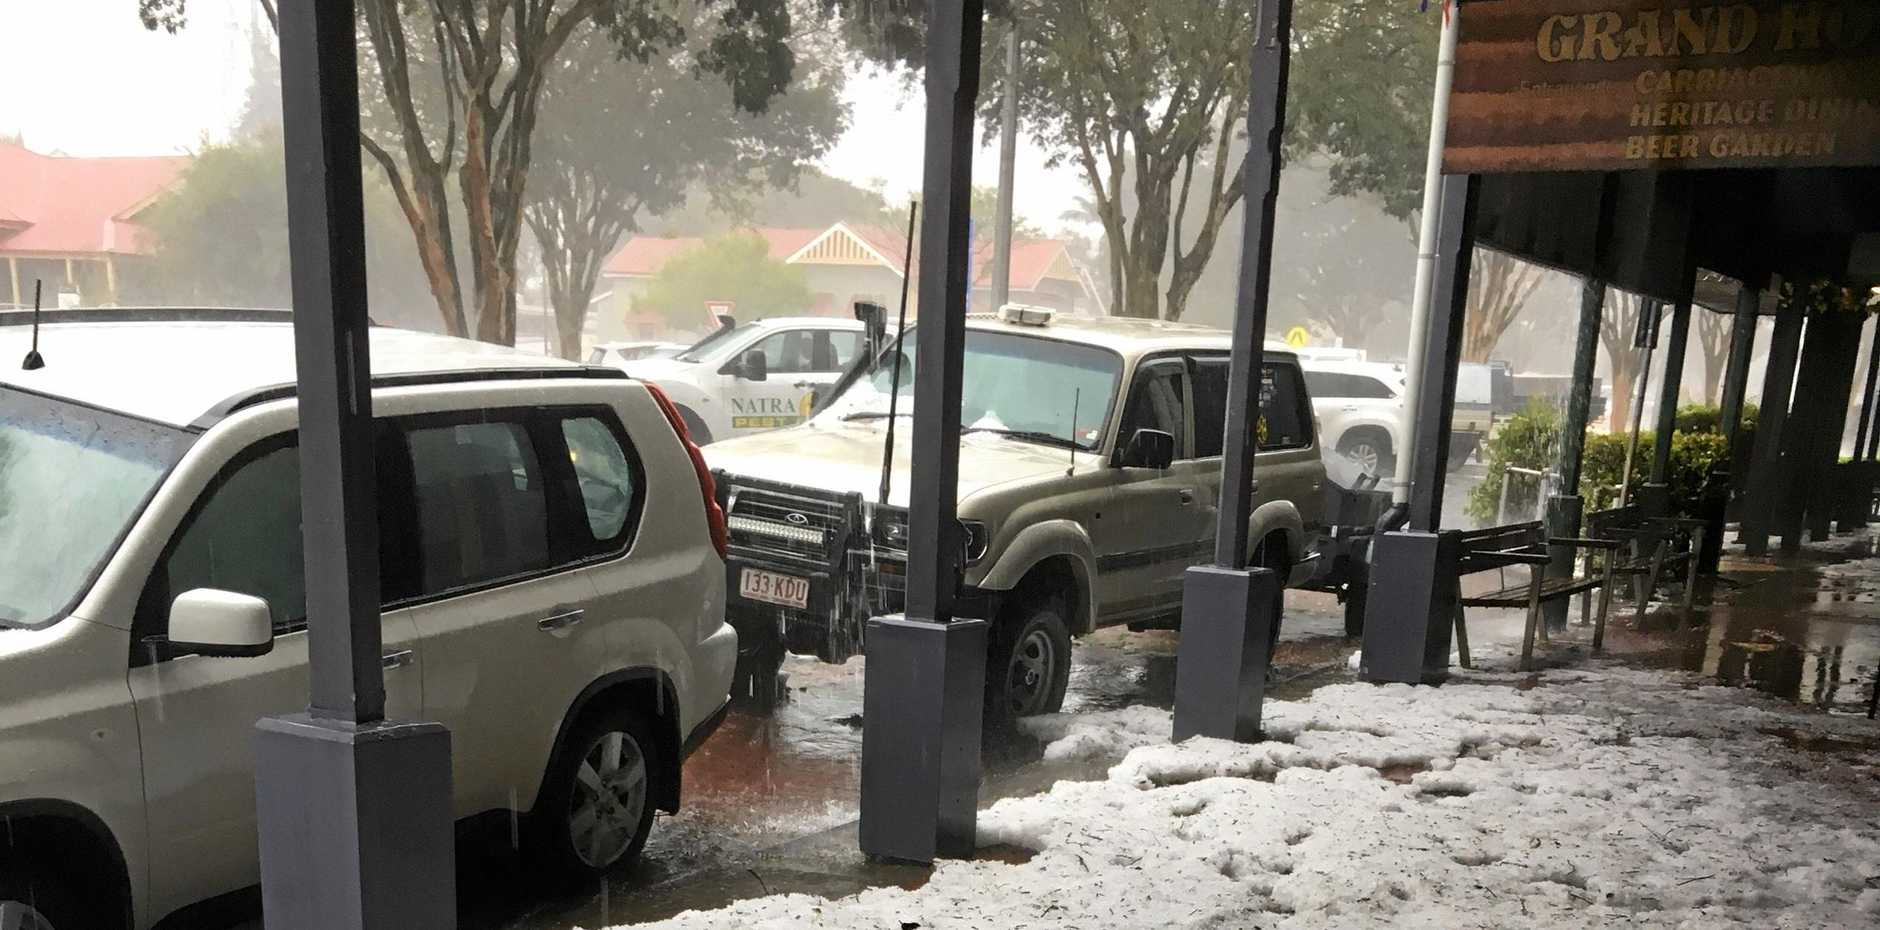 SNOW: Grand Hotel manager Sean Docherty said the cyclone-like storm had left a snow-like layer of hail at the front of the Childers pub.